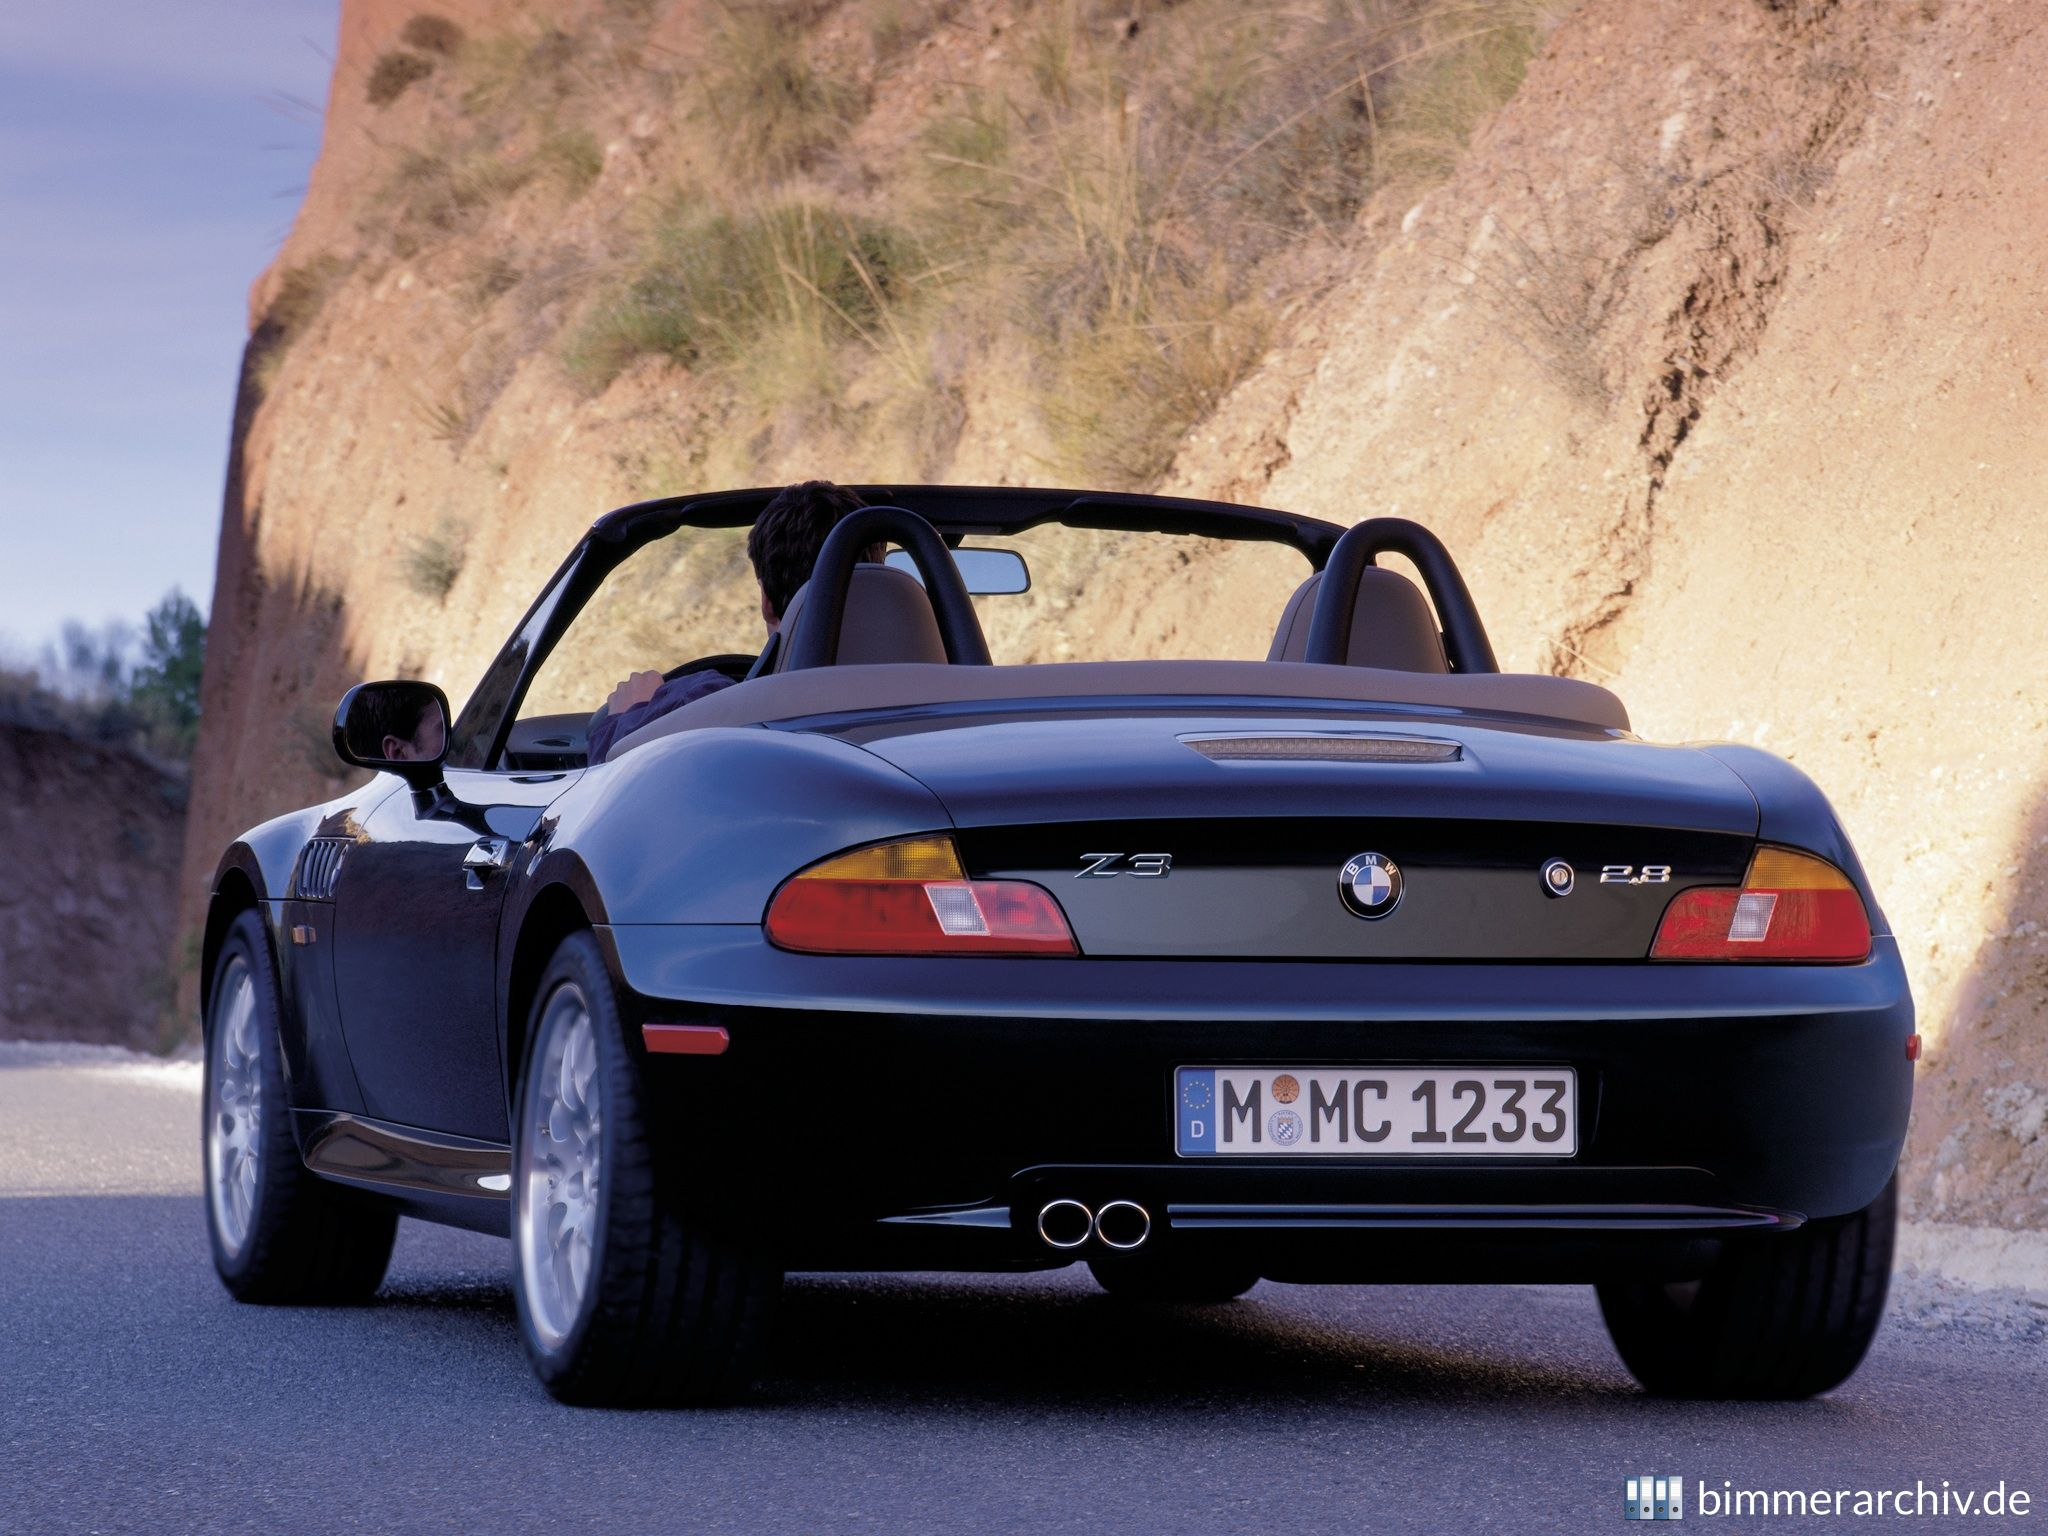 Model Archive For Bmw Models Bmw Z3 Roadster 2 8 Bmwarchive Org